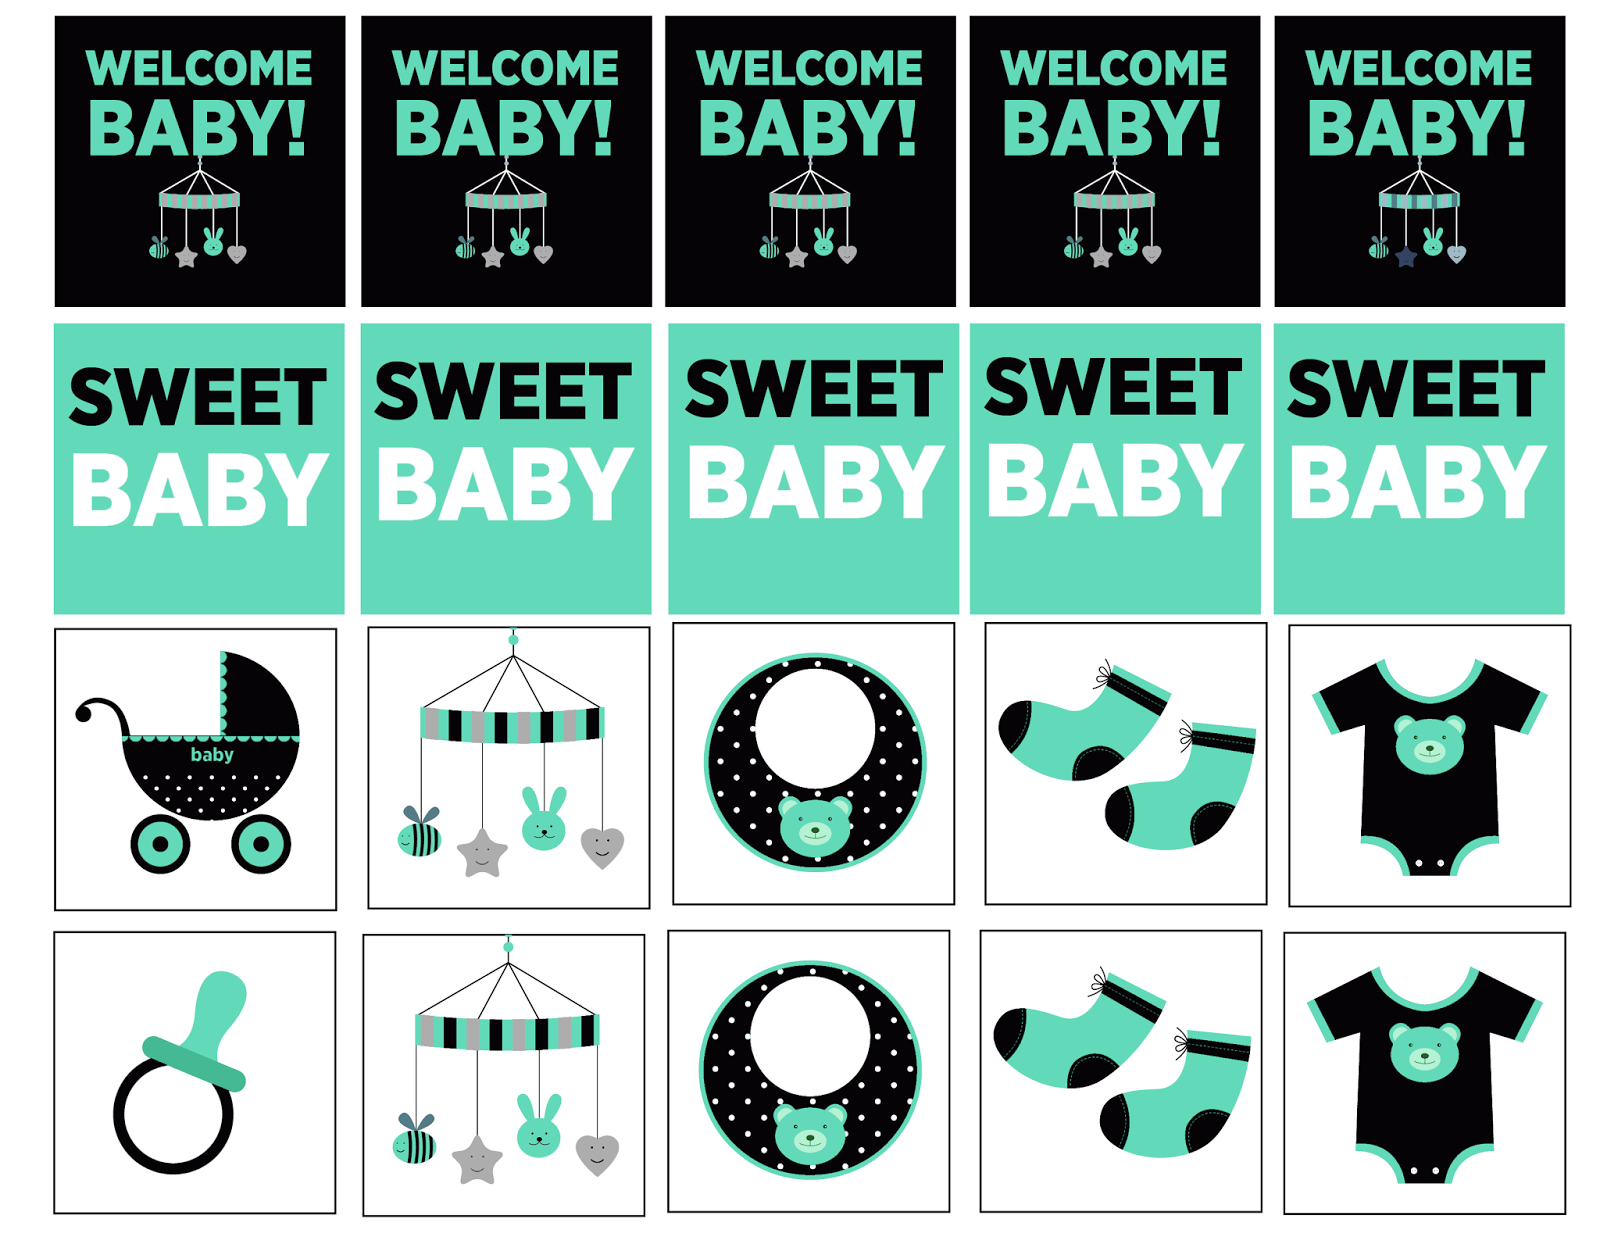 """""""SWEET BABY"""" letters"""